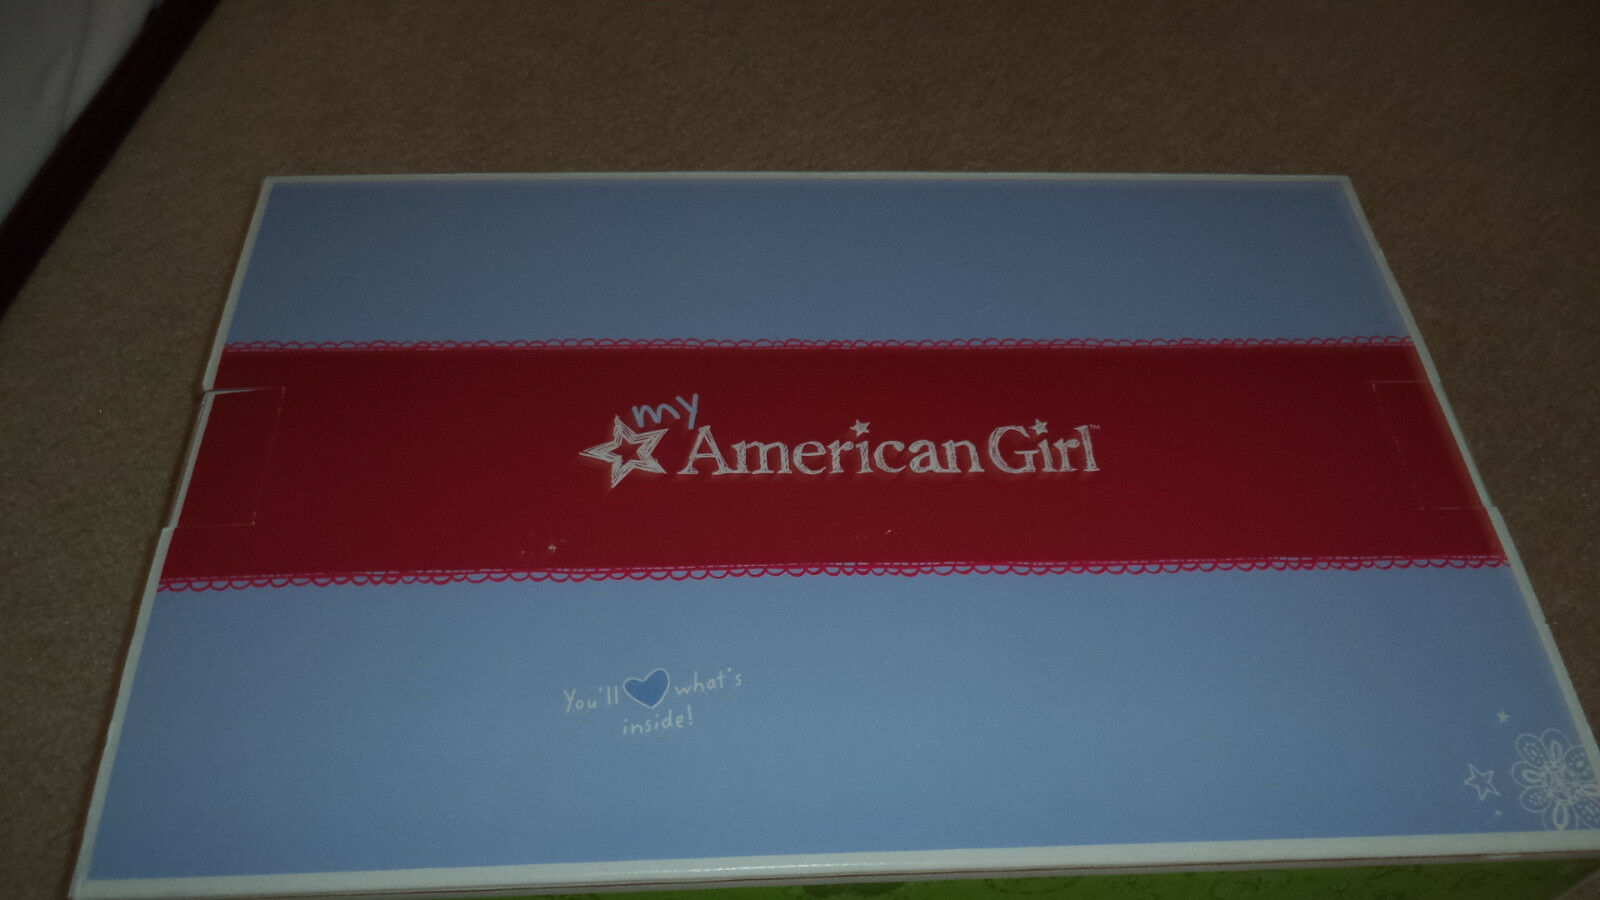 American Girl SunSet Outdoors Tent Set - New in Box